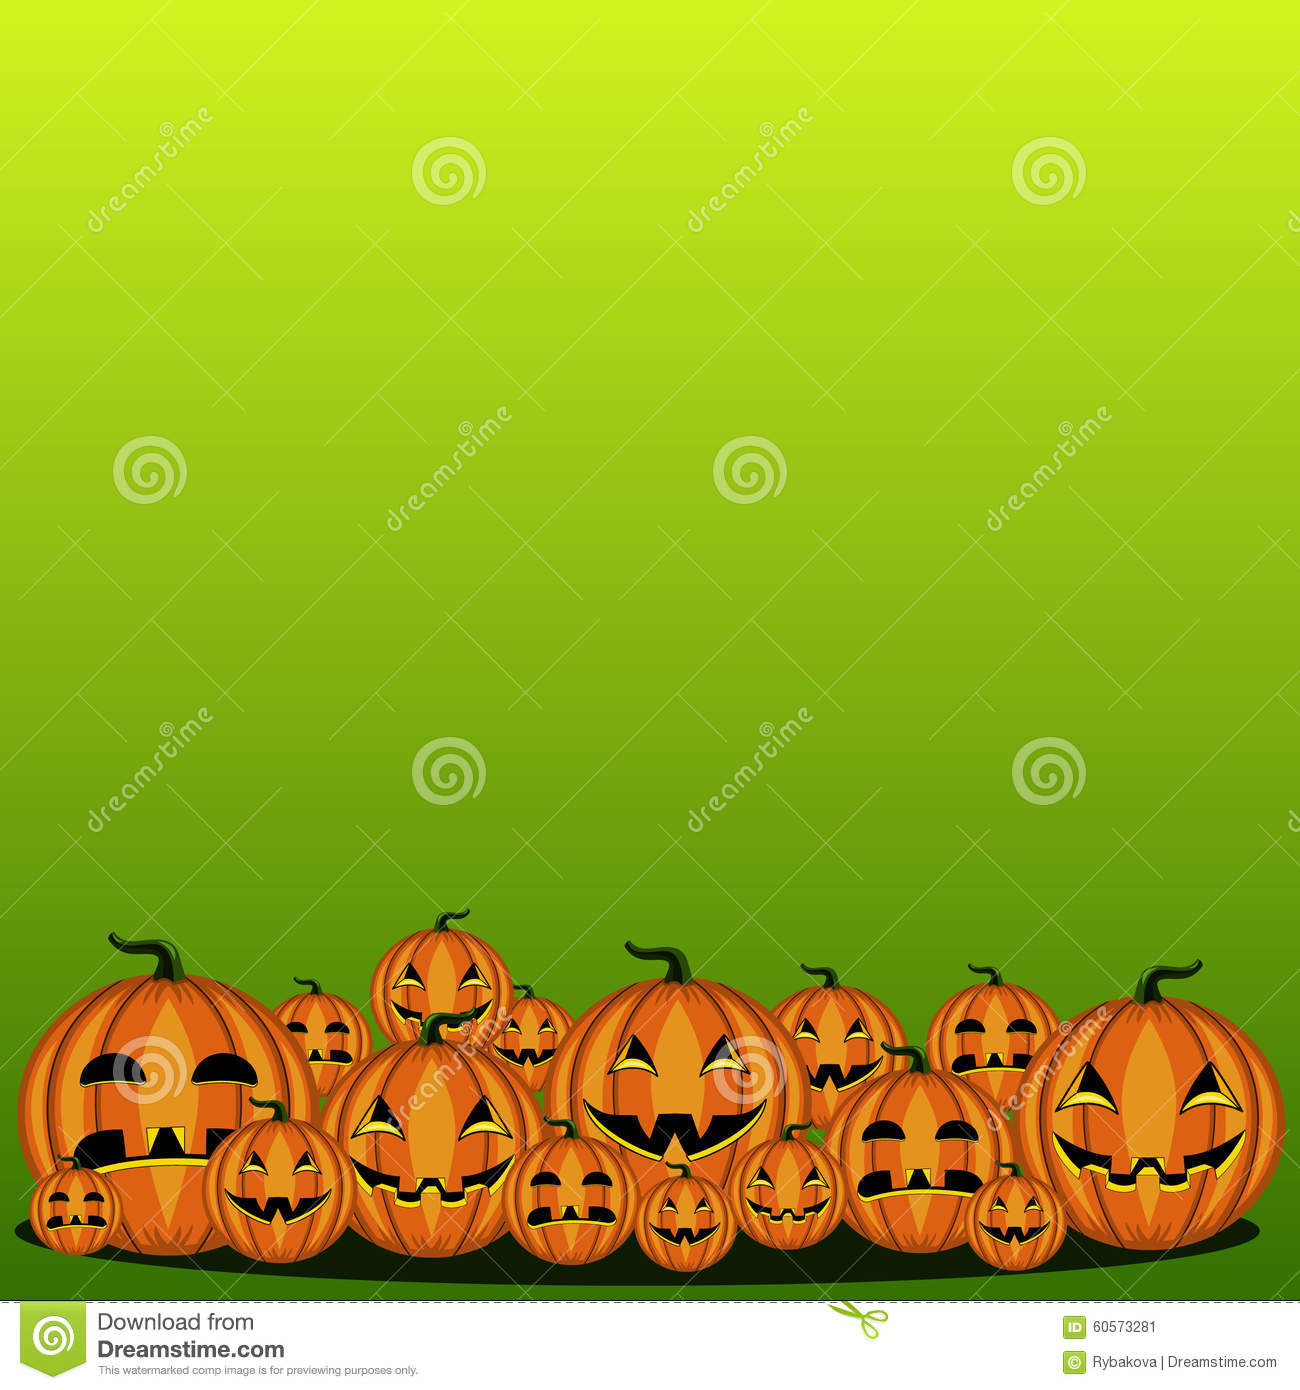 Card with Halloween pumpkin